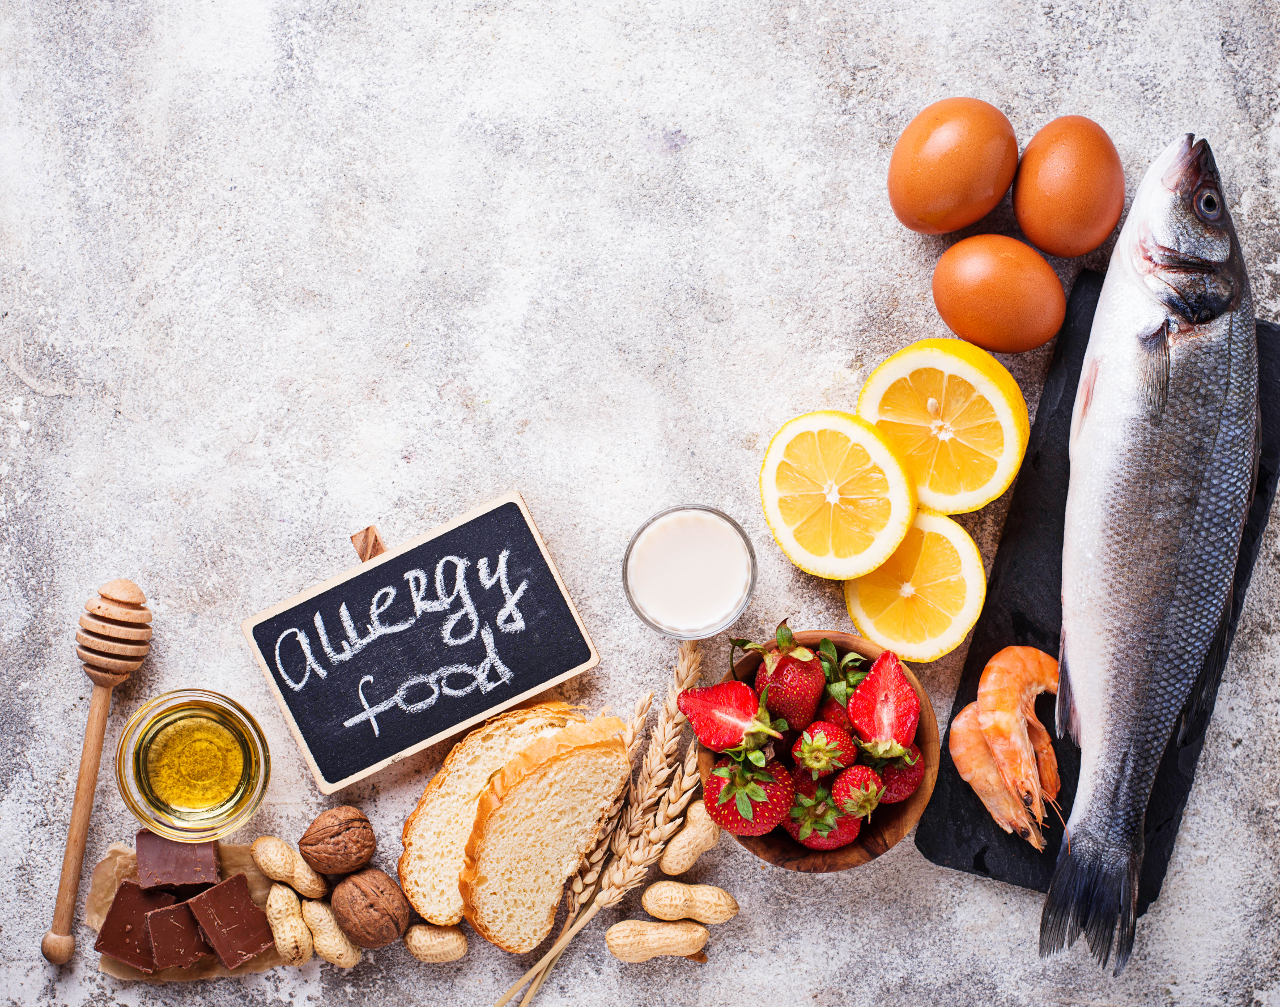 """Picture of different type of food with a board that have """"Allergy food"""" written on it"""